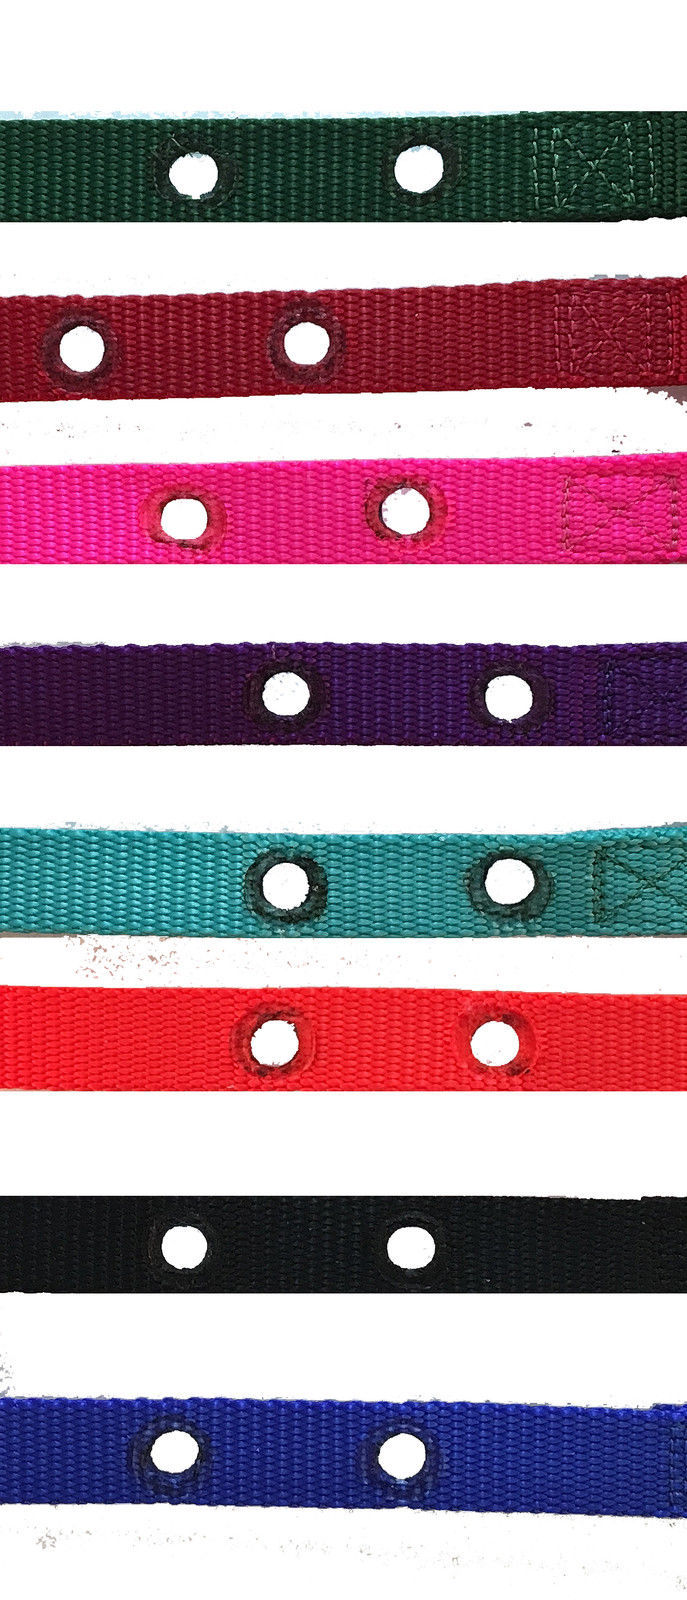 "PETSAFE COMPATIBLE 1 inch 2 HOLE 1.25"" APART Universal Replacement collar strap"